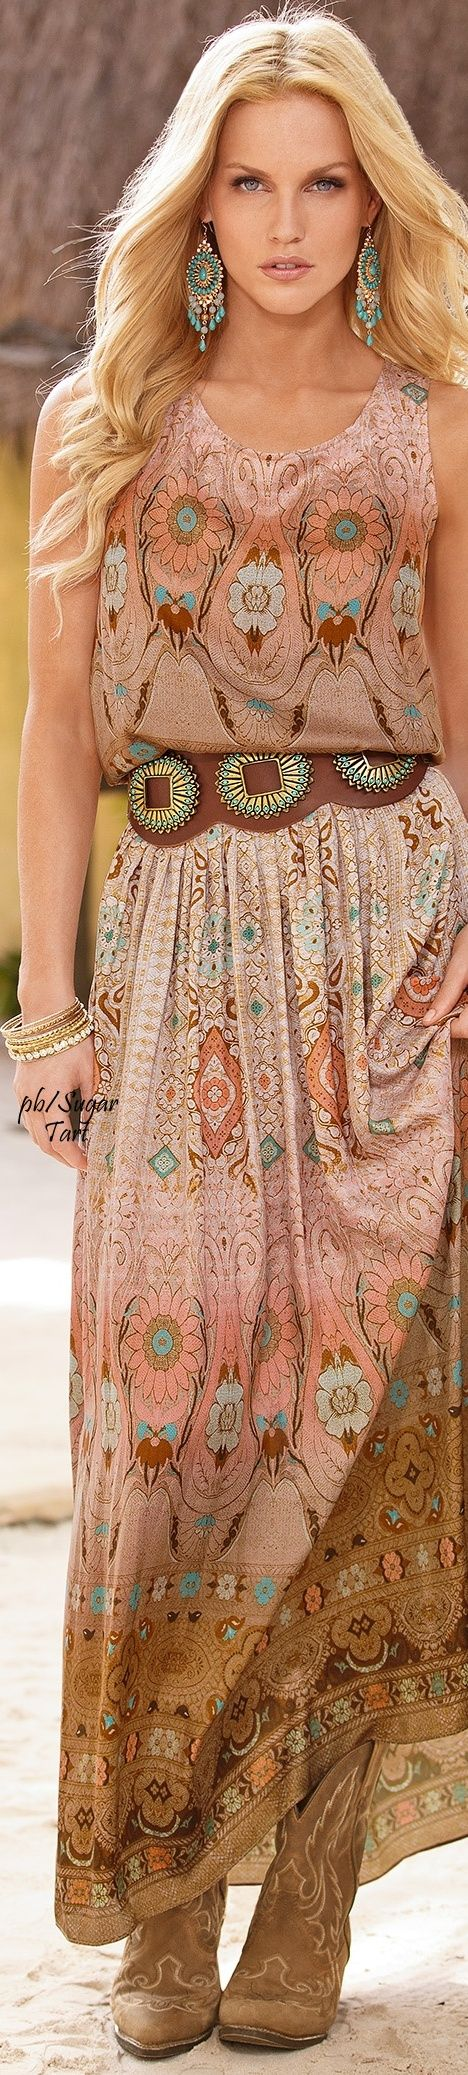 Boho bohemian hippie gypsy style belt and earrings. For more follow www.pinterest.com/ninayay and stay positively #inspired